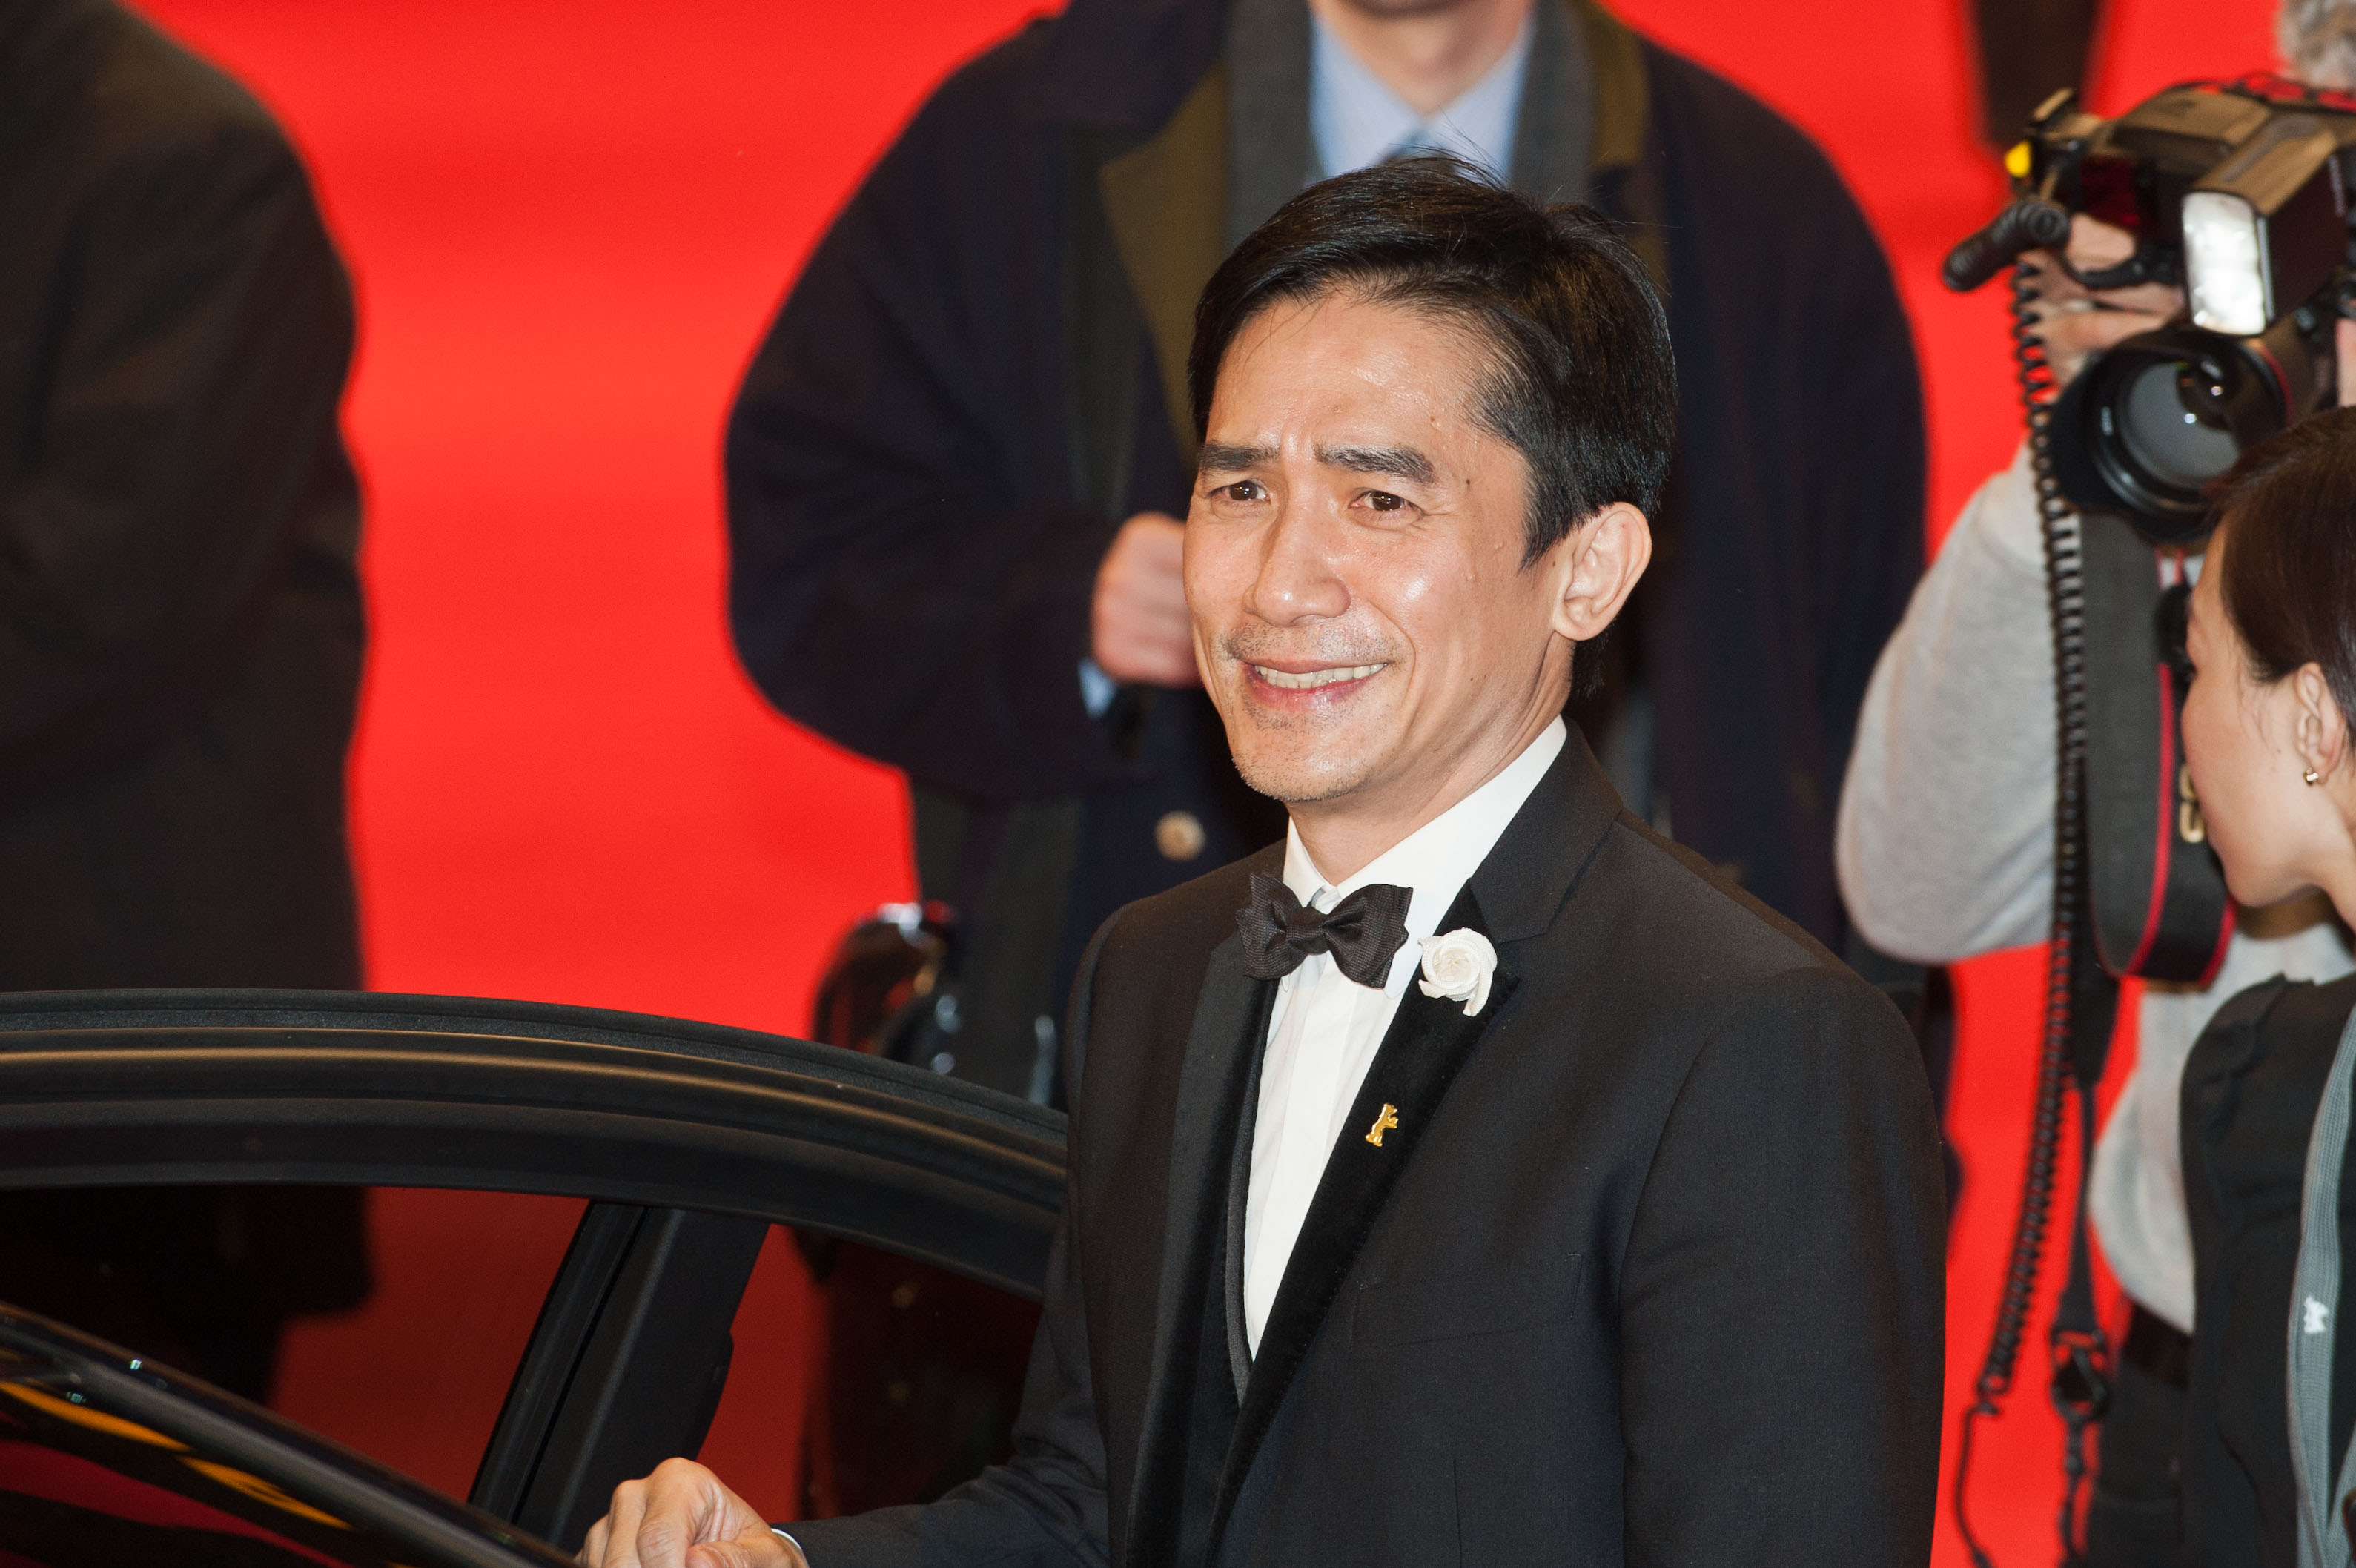 The 56-year old son of father (?) and mother(?) Tony Leung in 2018 photo. Tony Leung earned a  million dollar salary - leaving the net worth at 20 million in 2018